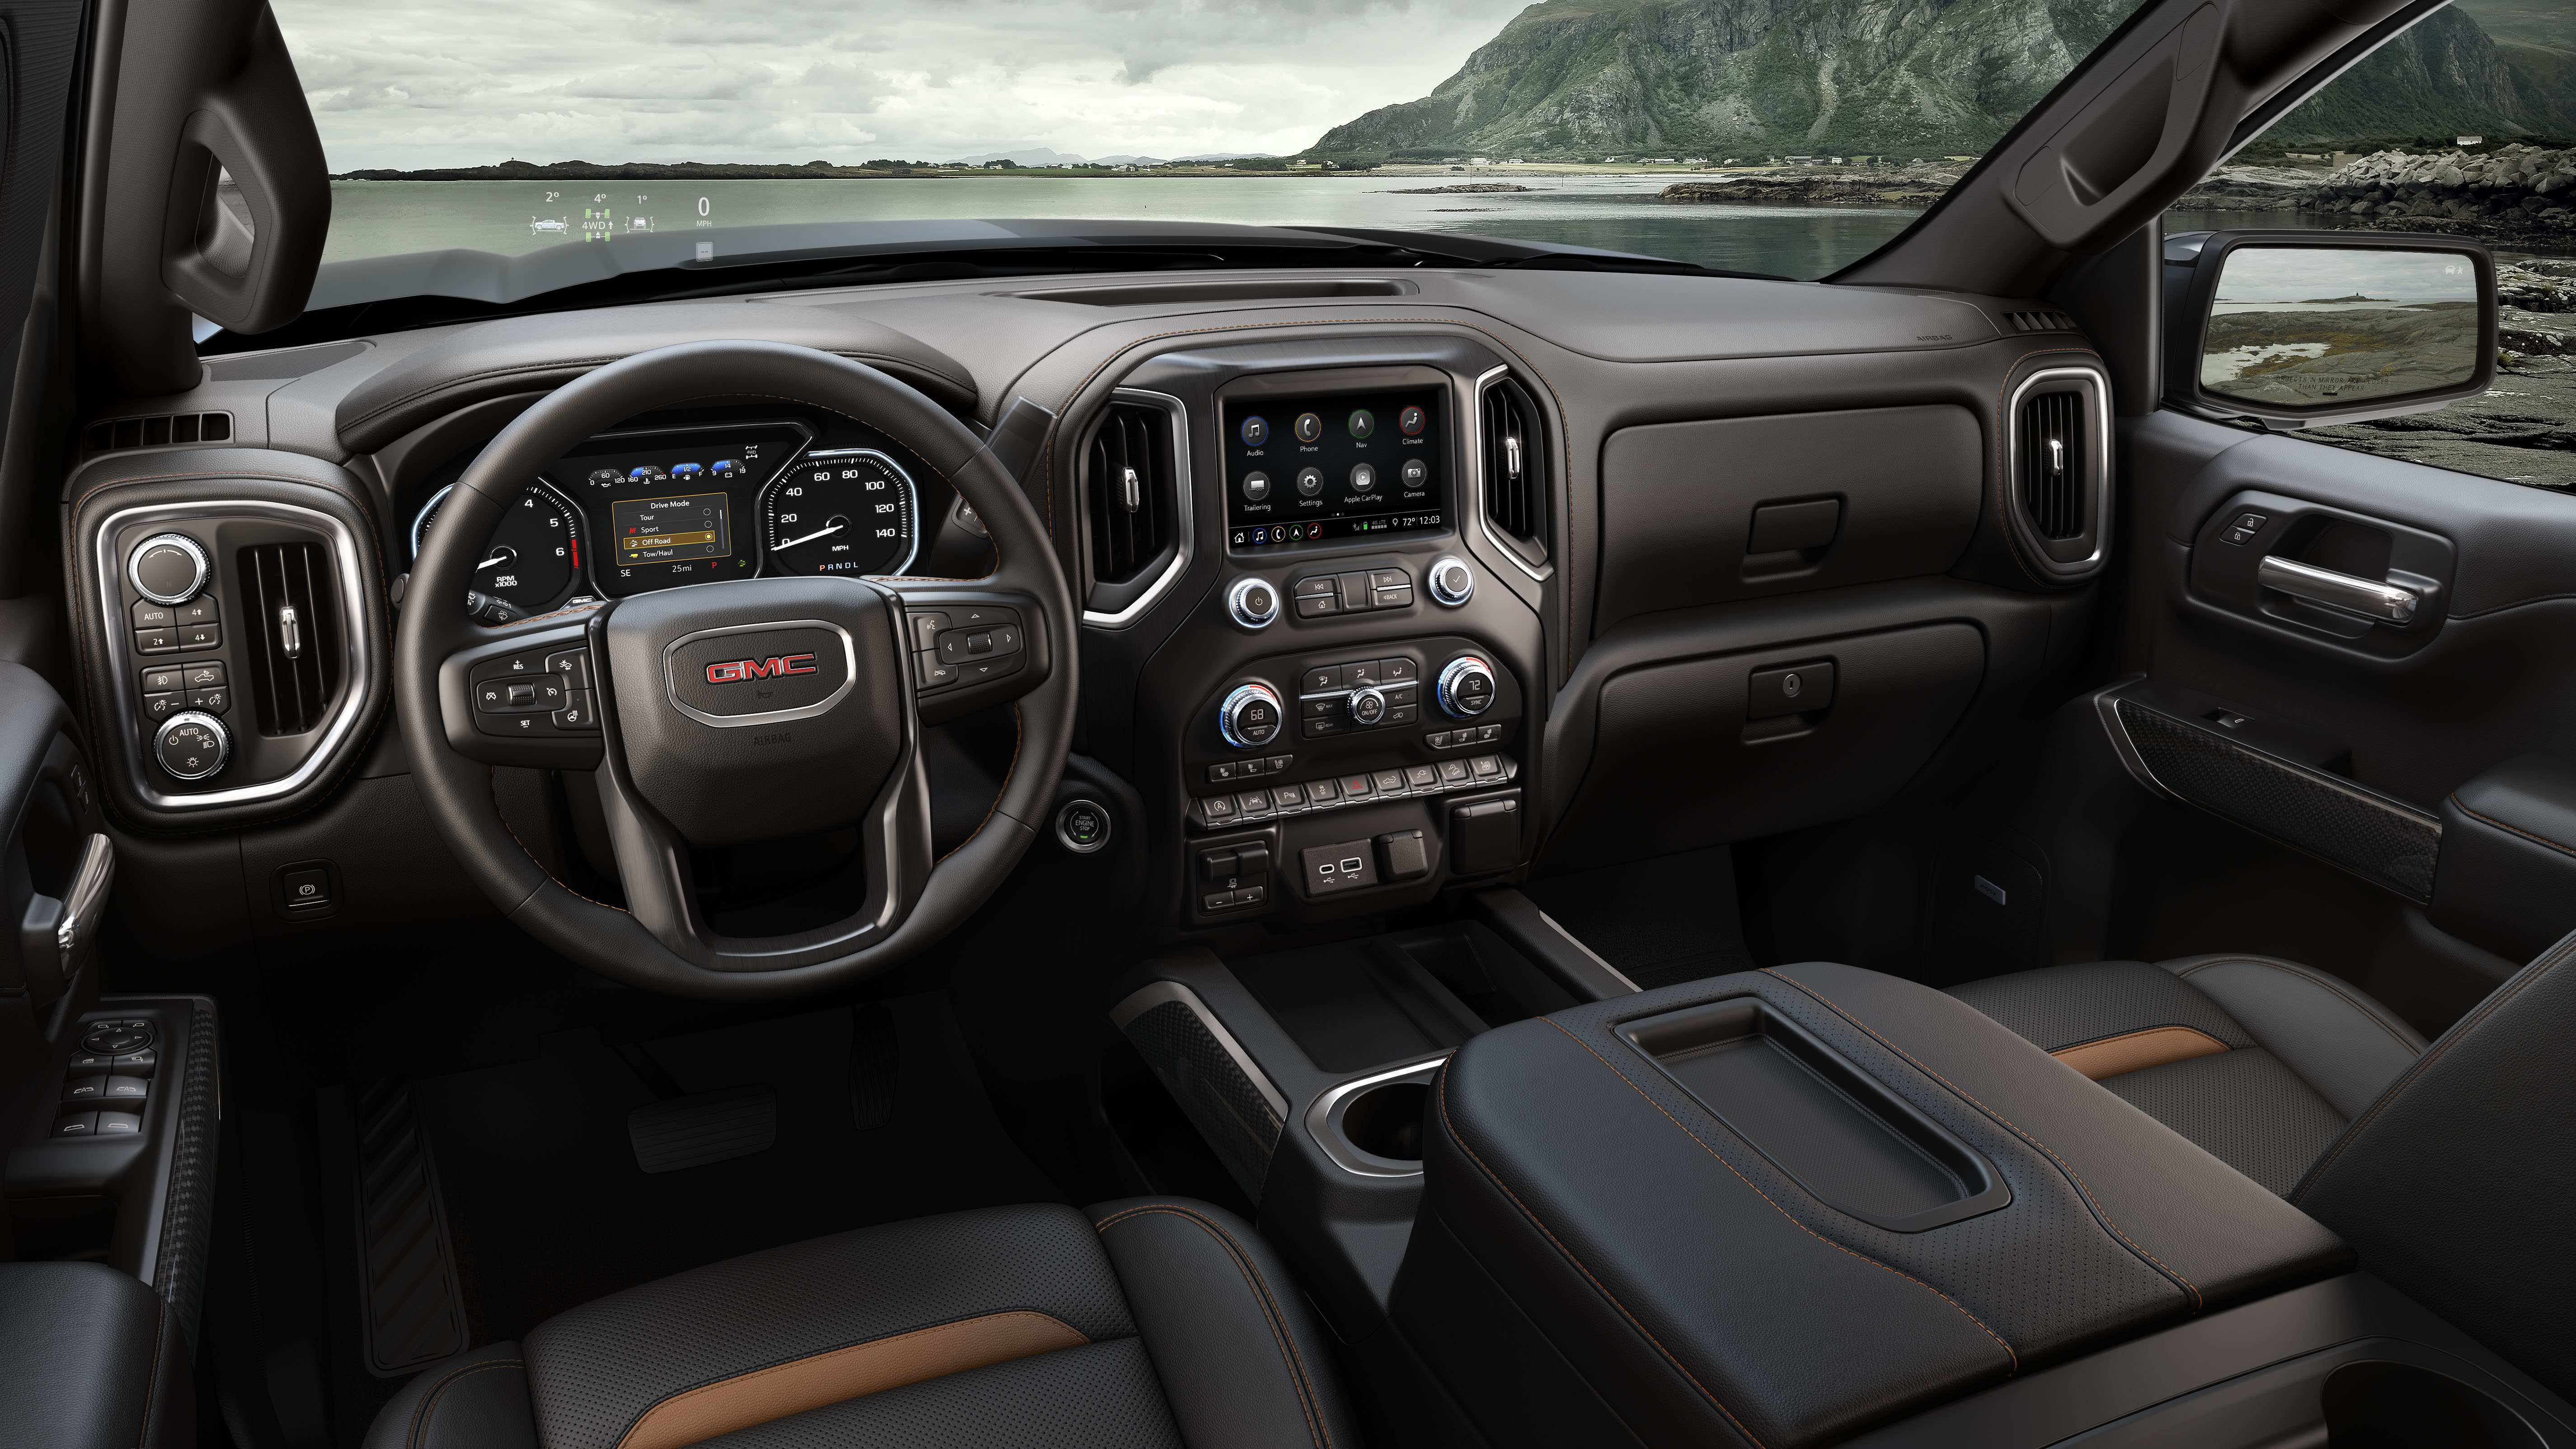 81 All New New 2019 Gmc Sierra At4 Interior Exterior And Review Price with New 2019 Gmc Sierra At4 Interior Exterior And Review